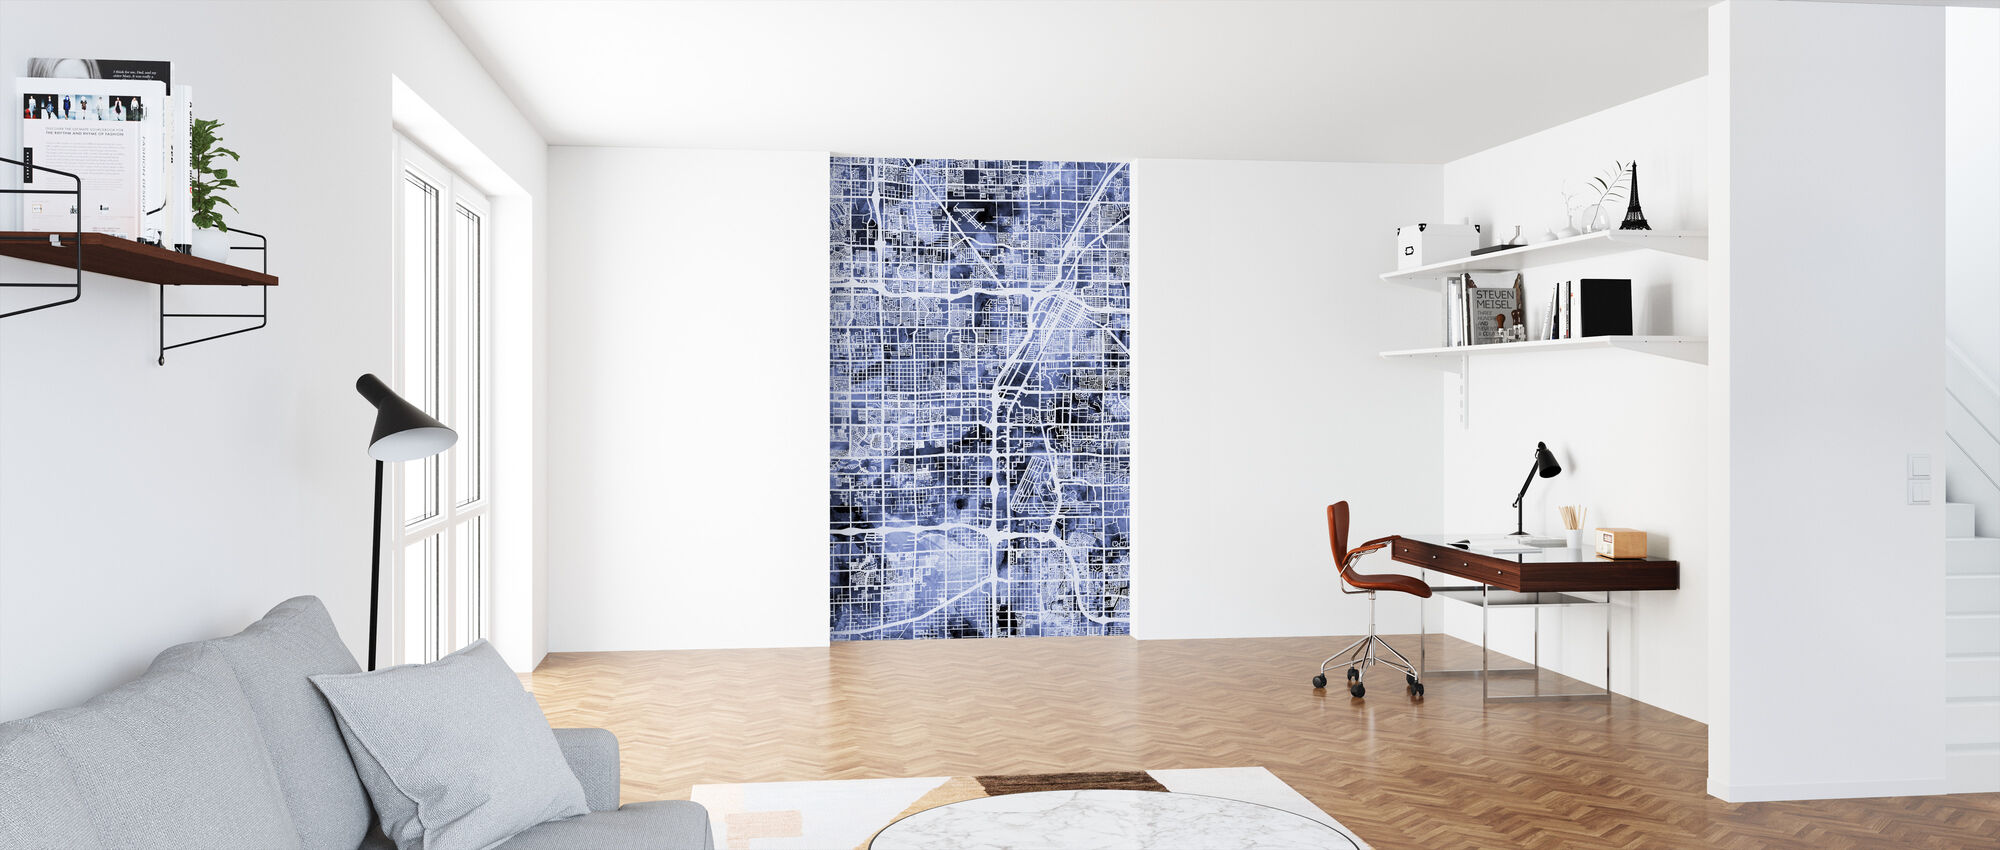 Las Vegas City Street Map - Wallpaper - Office